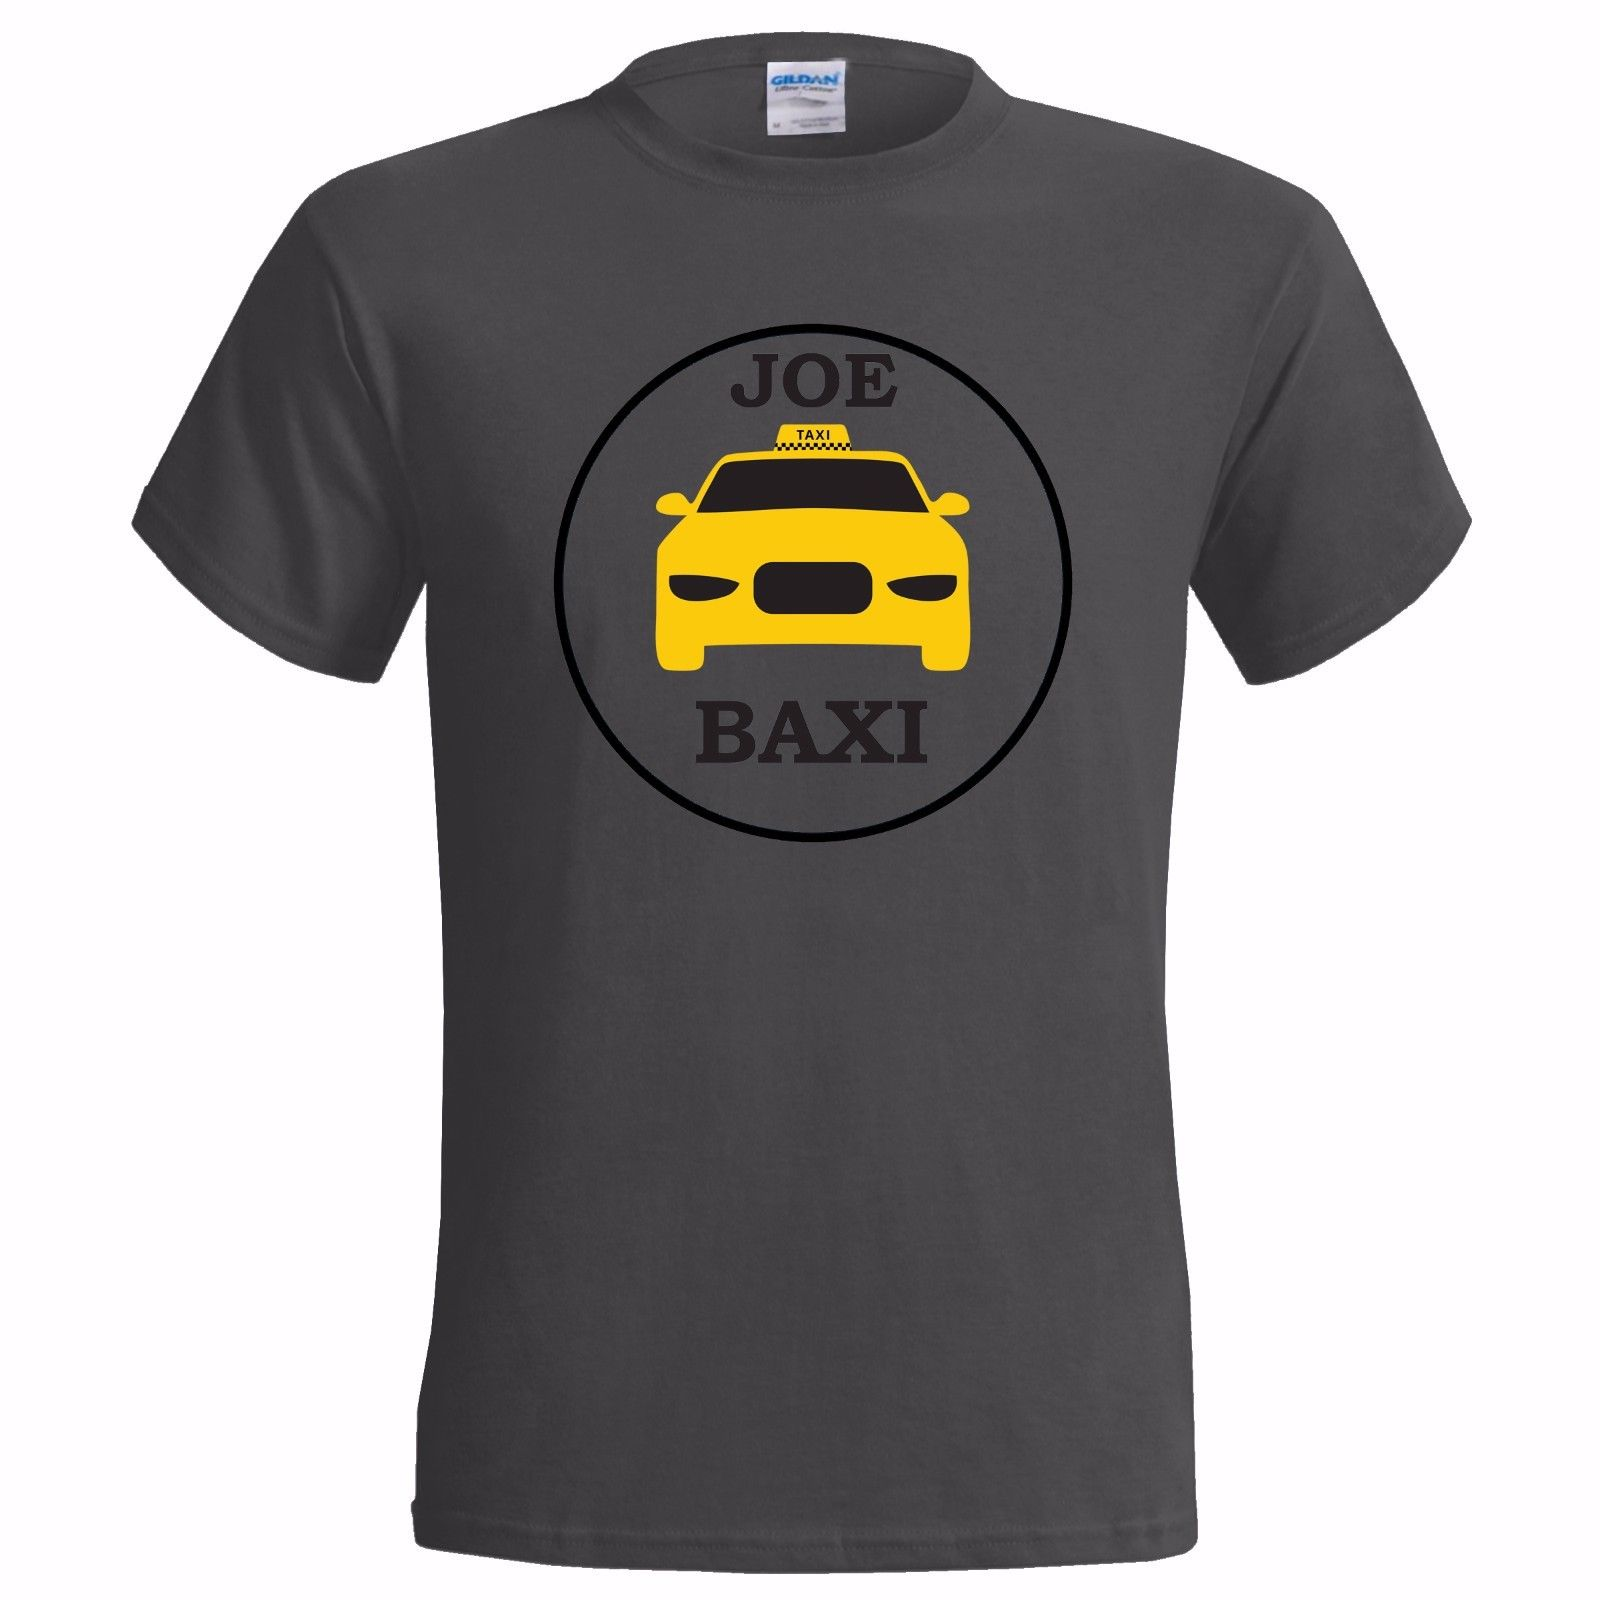 JOE BAXI LOGO MENS T SHIRT TAXI DRIVER JO YORKSHIRE LANCASHIRE NORTH NORTHERN 100 Cotton Short Sleeve O Neck Tops Tee Shirts in T Shirts from Men 39 s Clothing